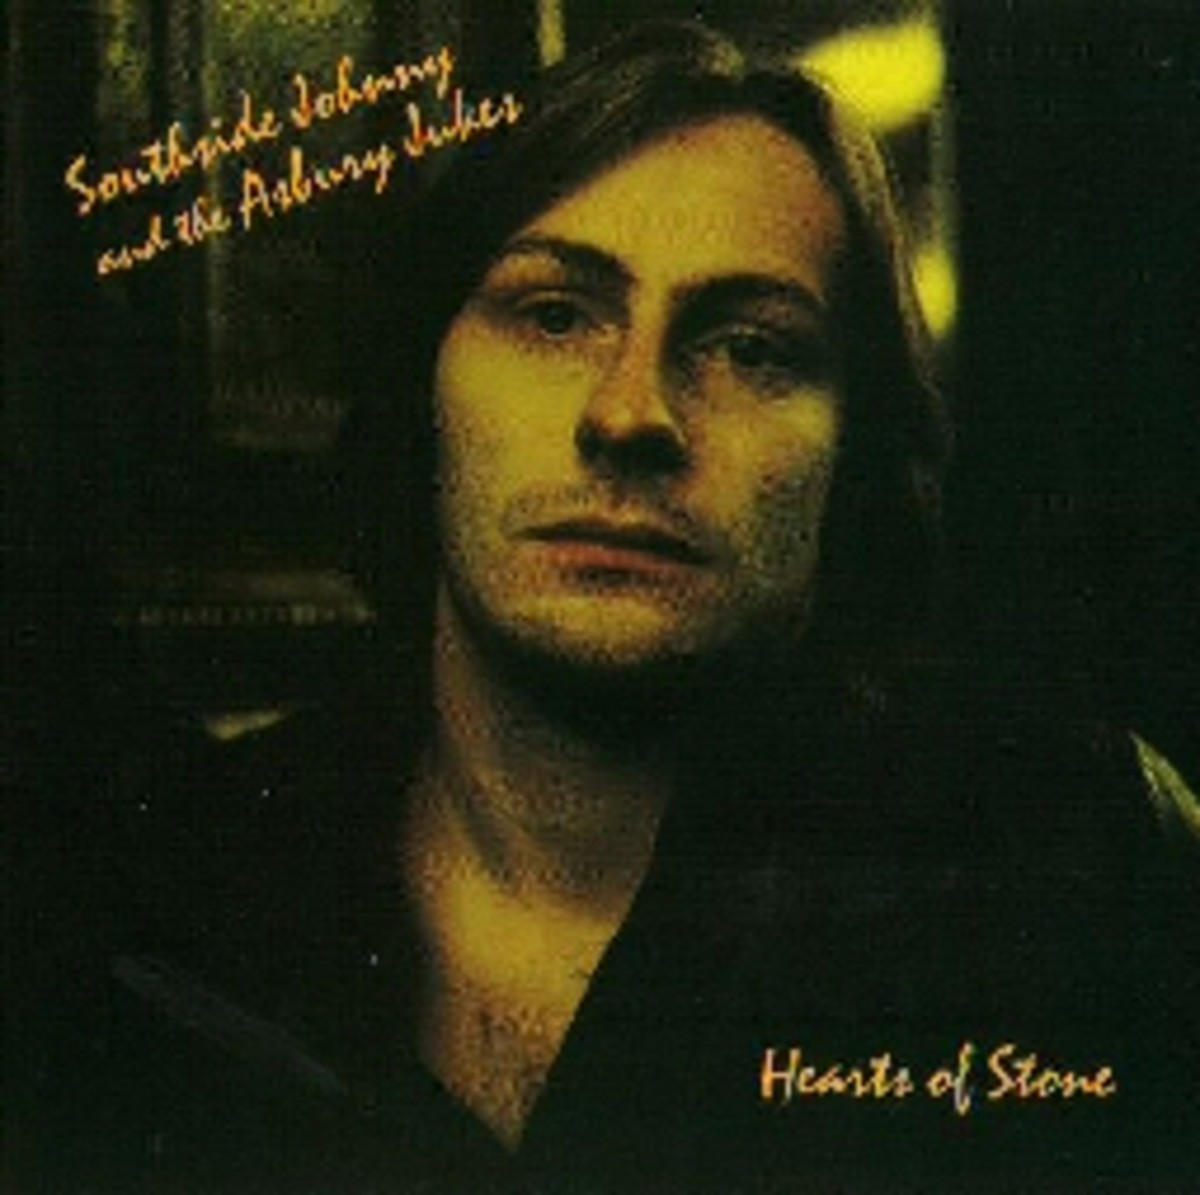 Southside_Johnny_1978_Album_Hearts_of_Stone